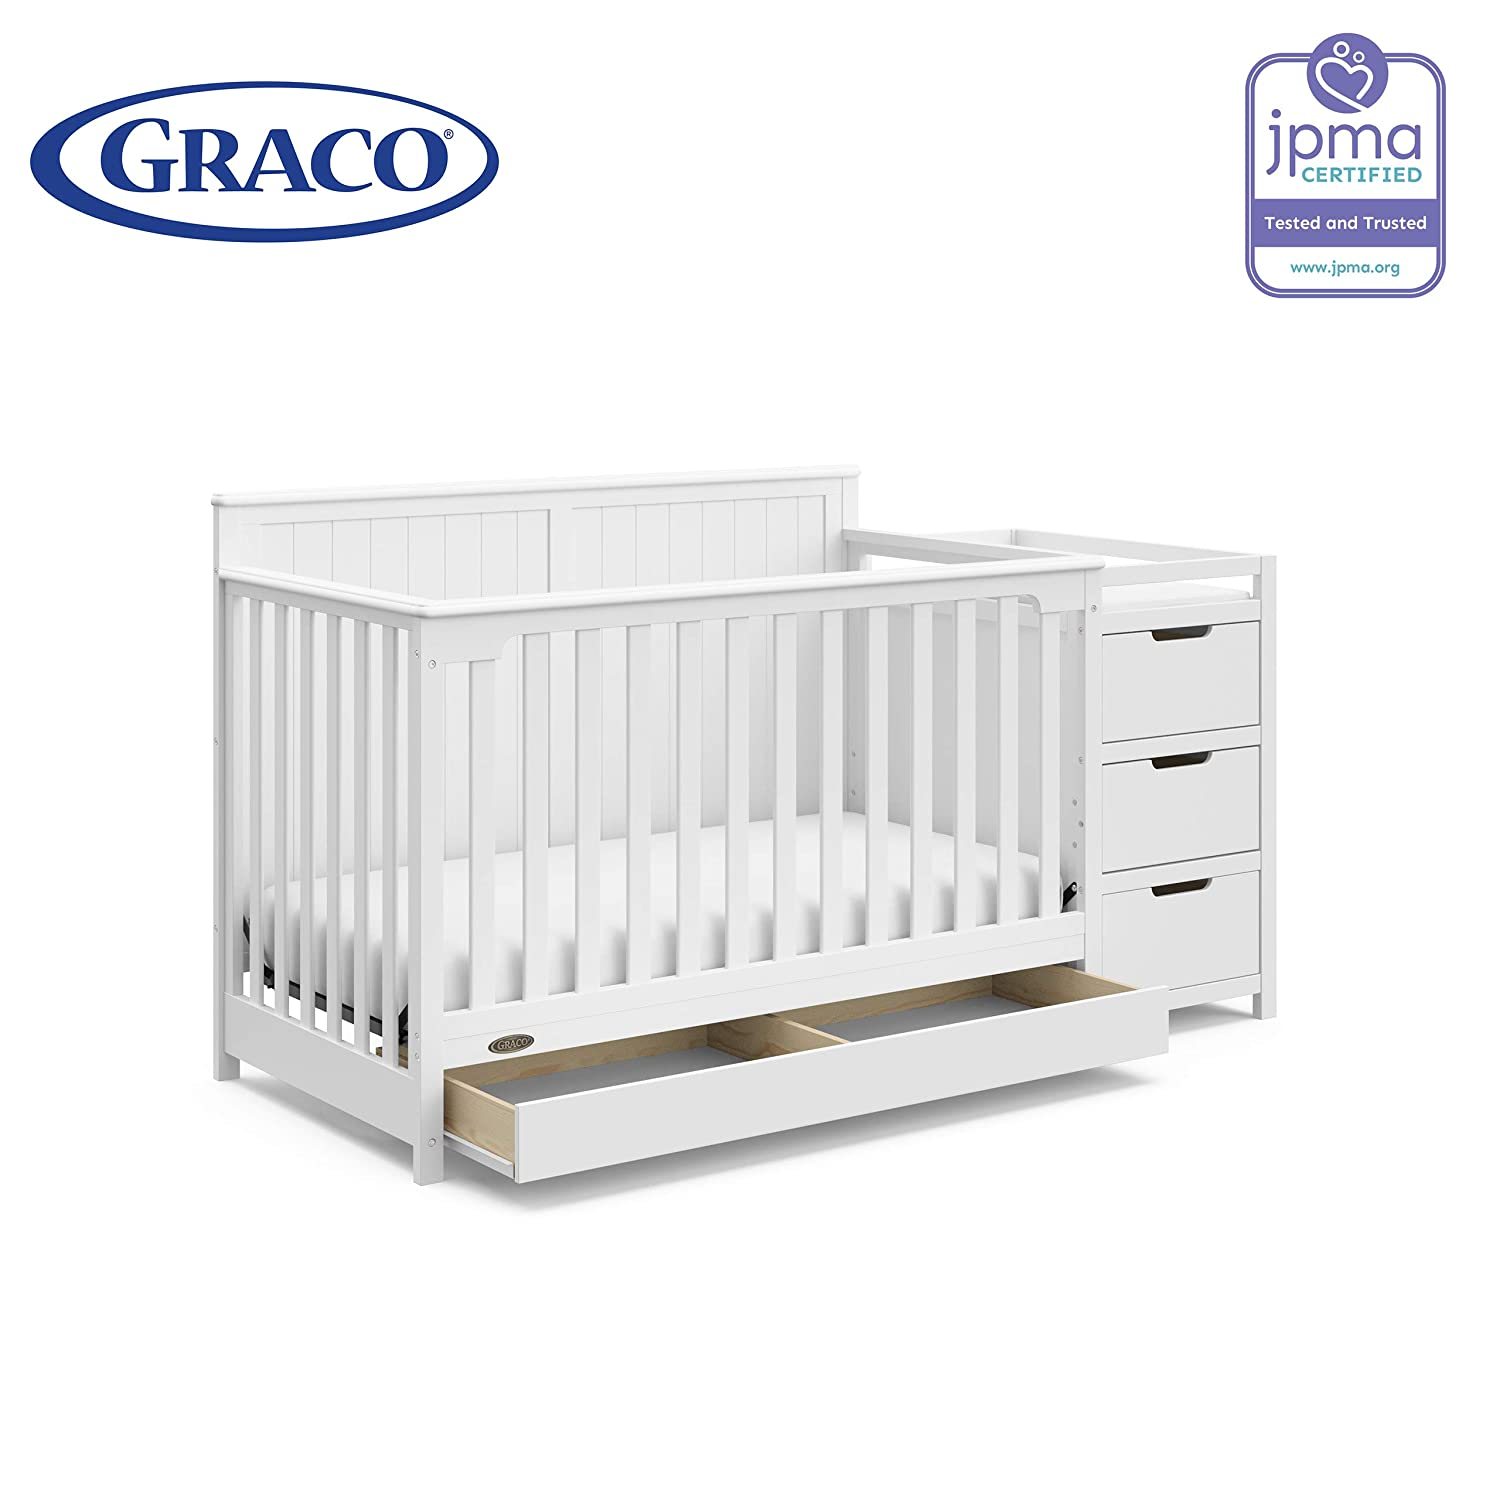 Graco Hadley 4 in 1 Convertible Crib Changer with Drawer Espresso Mattress Not Included Three Position Adjustable Height Mattress Easily Converts to Toddler Bed Day Bed or Full Bed